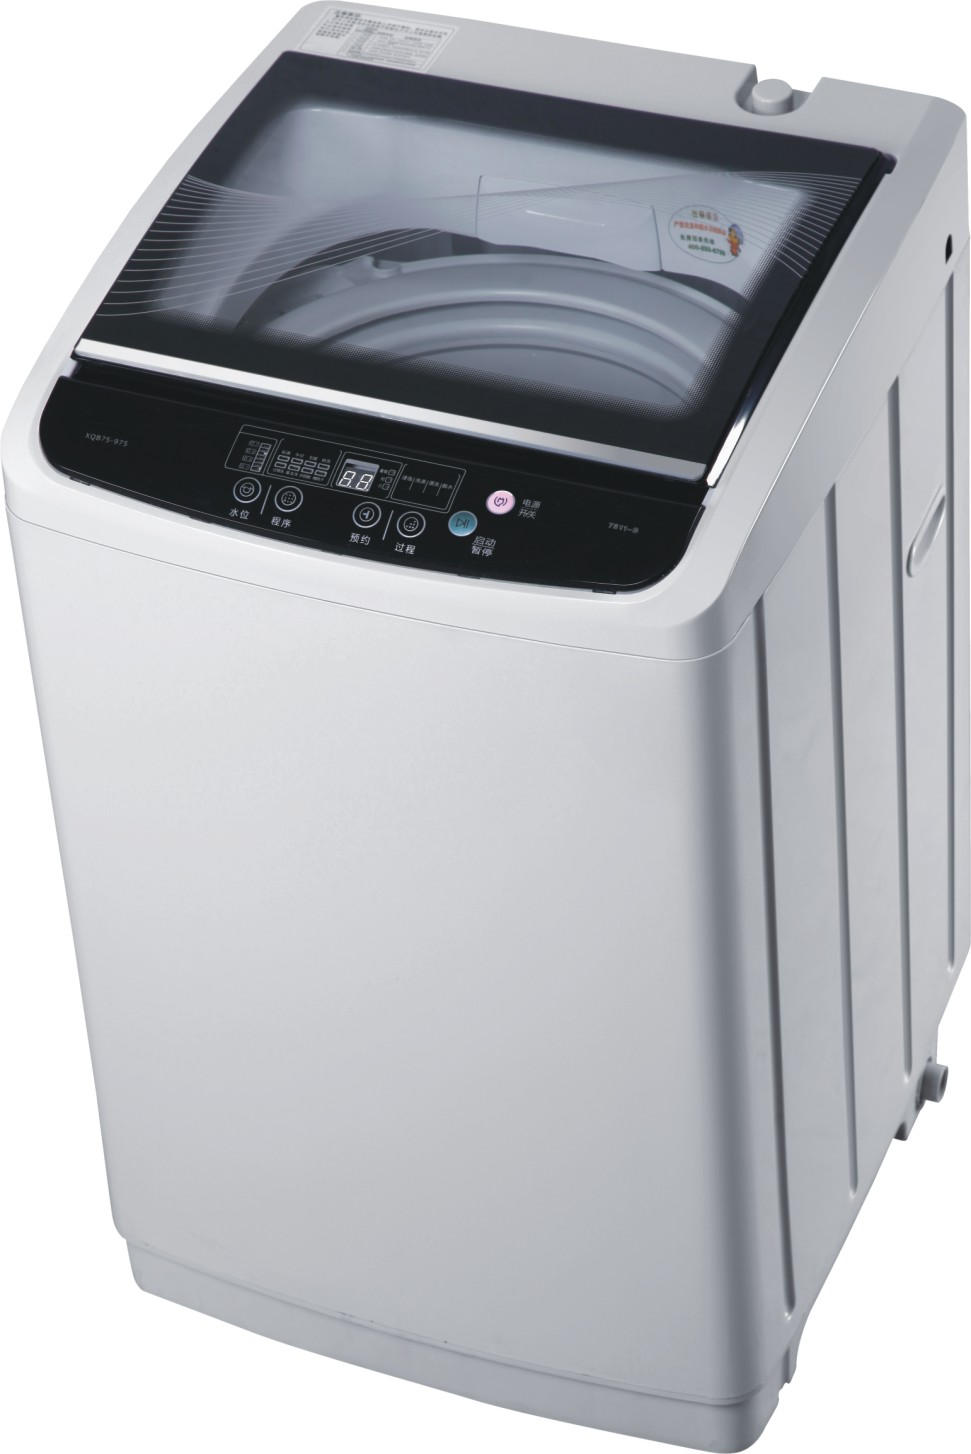 Fully automatic washing machine, XQB60-960